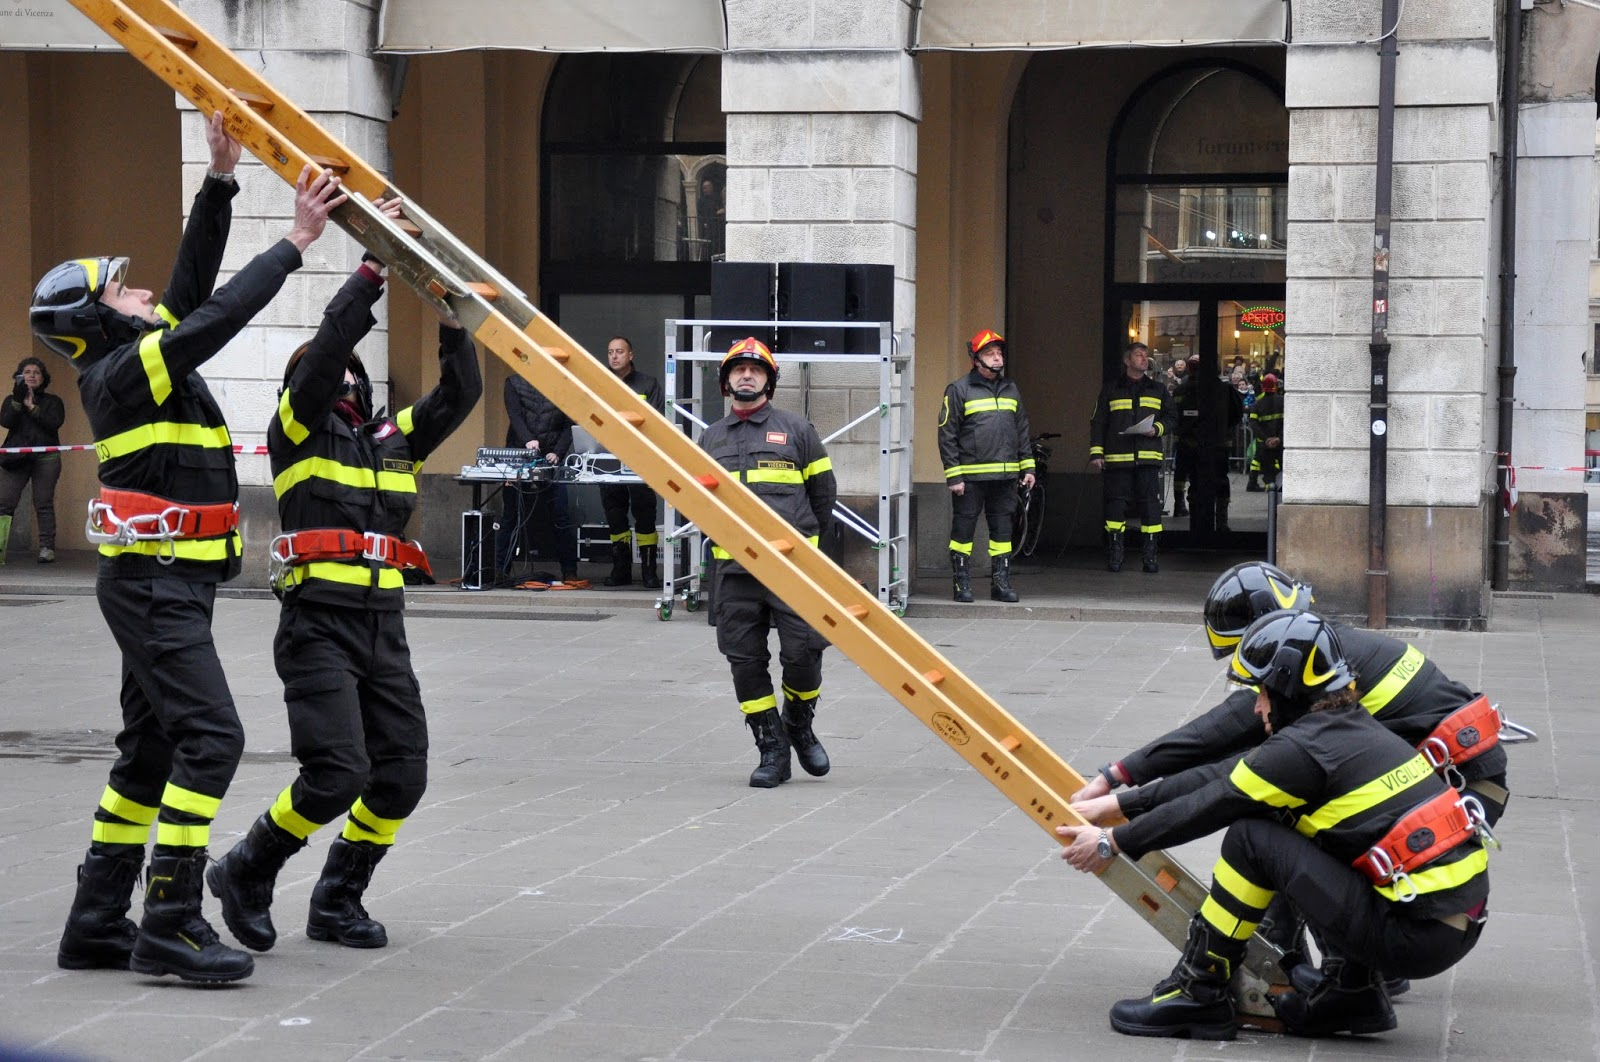 Firefighting demonstration, Piazza dei Signori, Saint Barbara celebration, Vicenza, Veneto, Italy